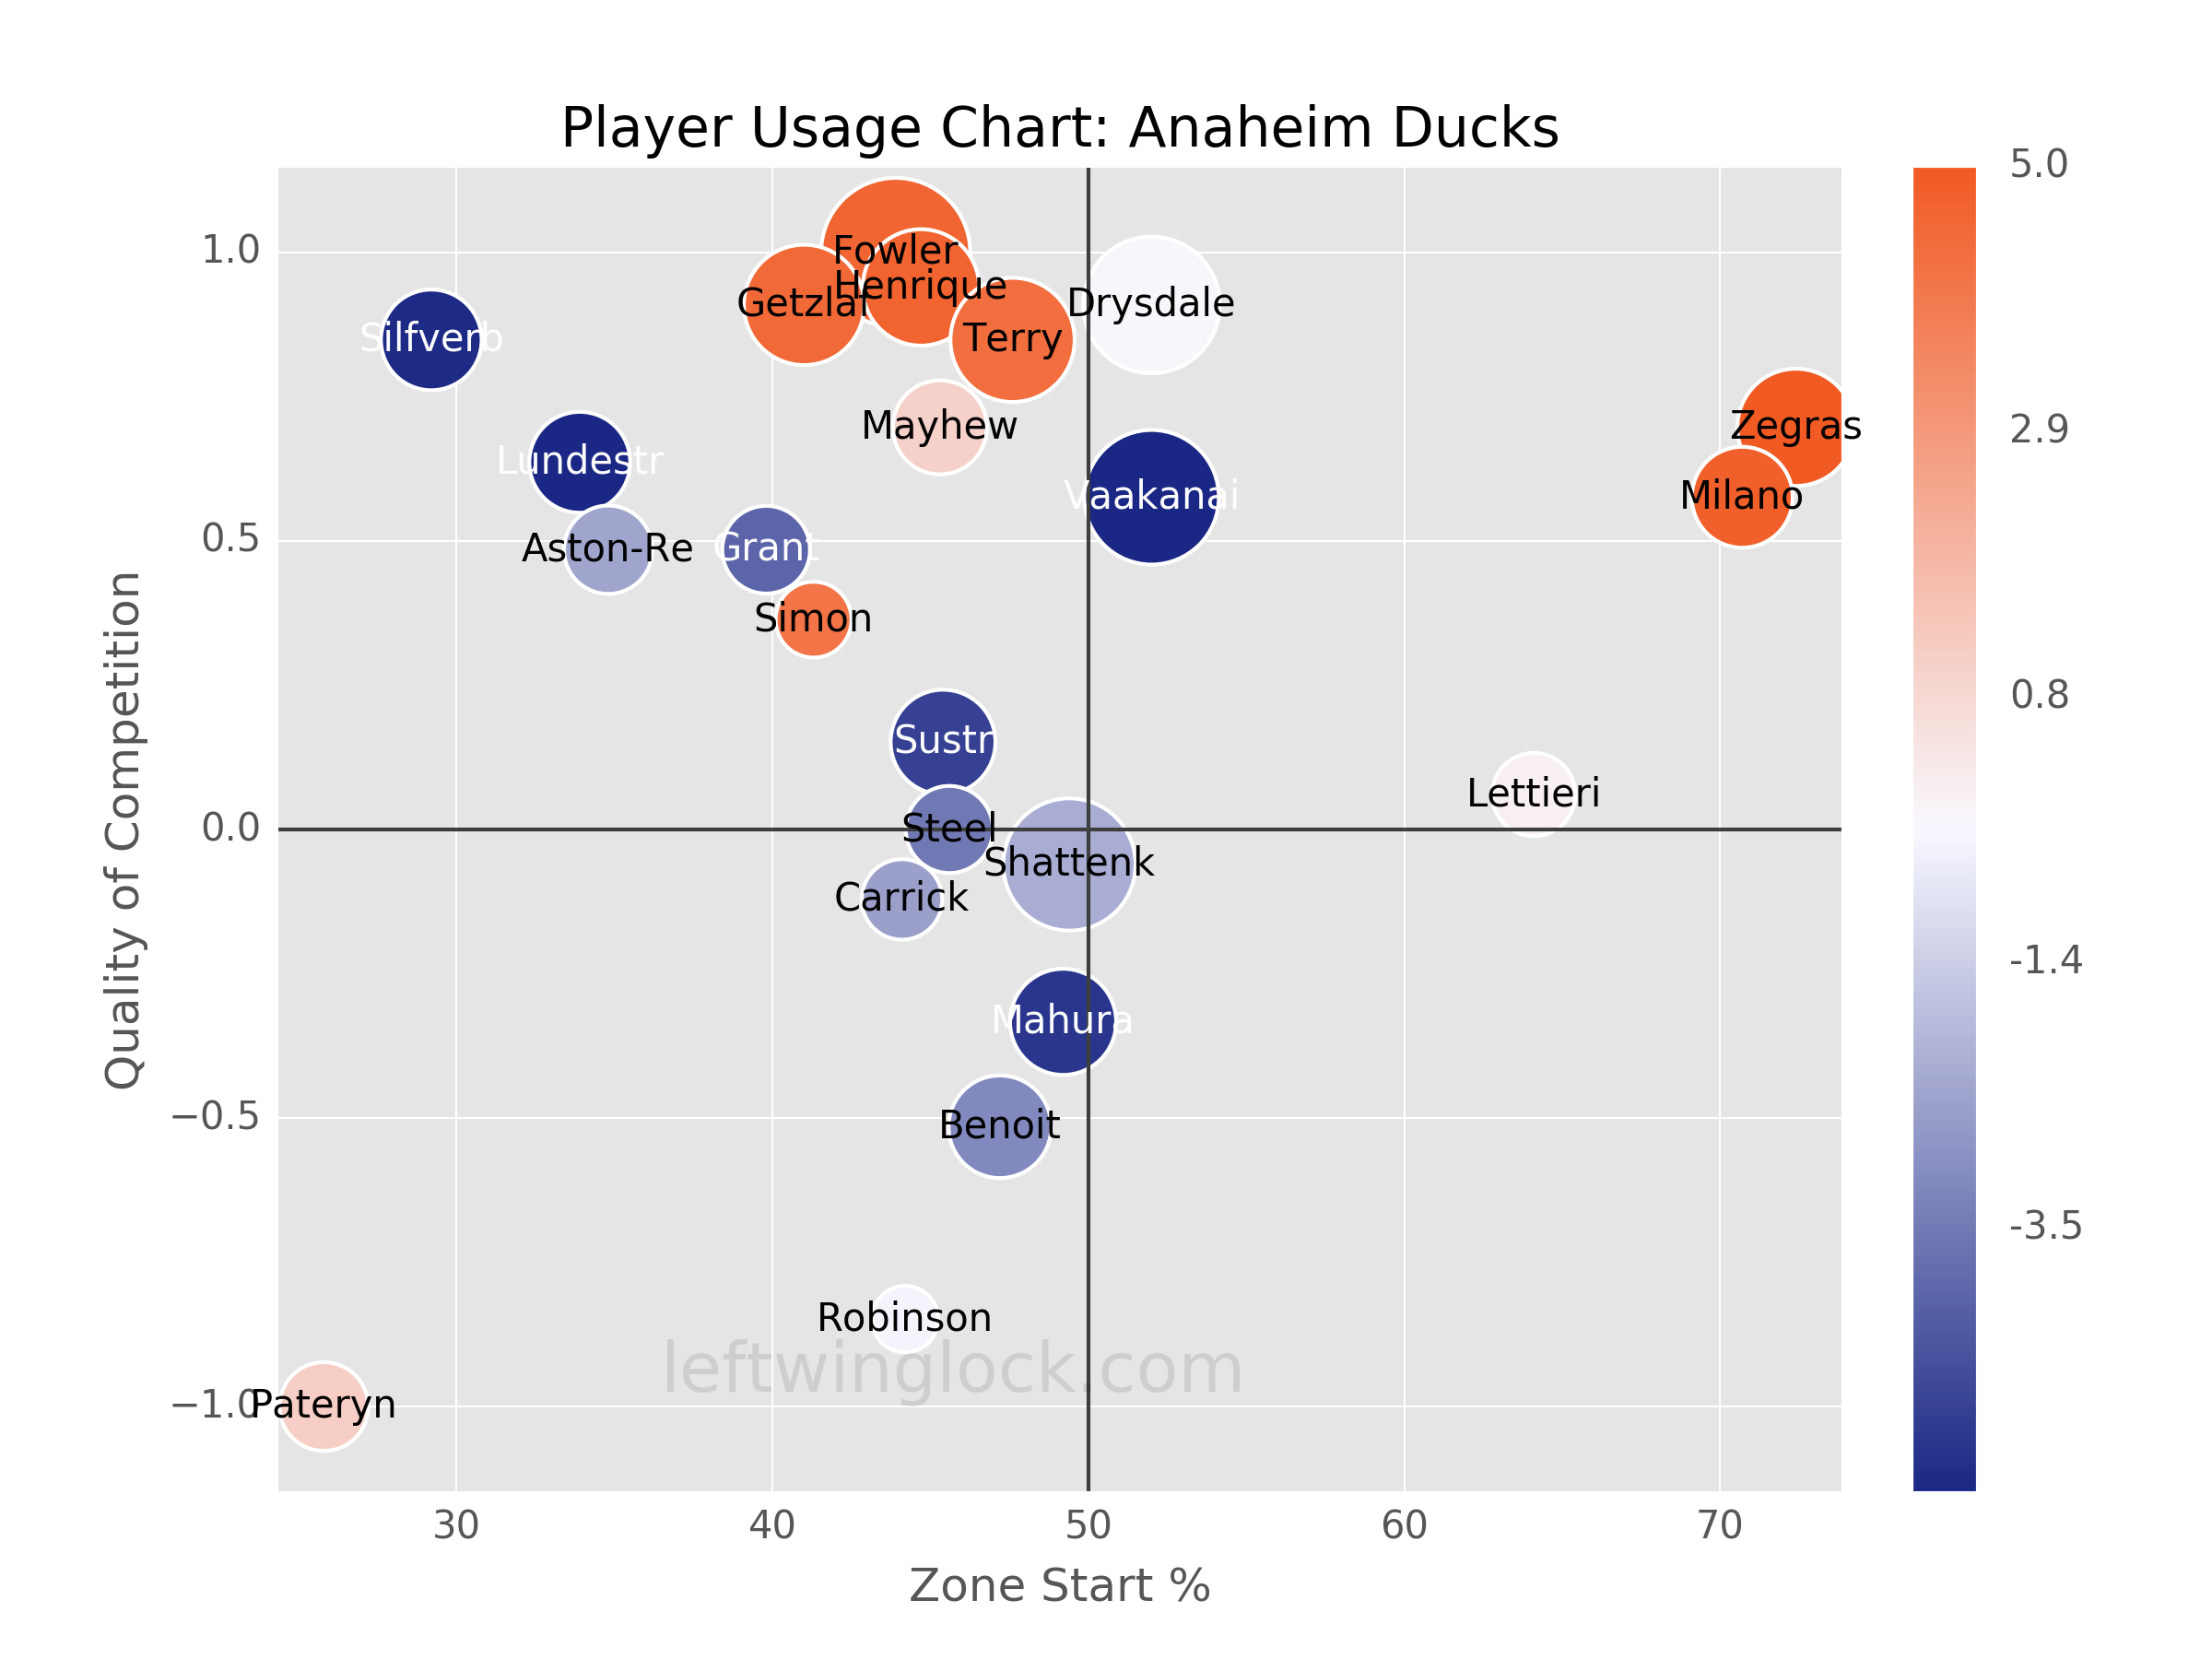 Anaheim Ducks Player Usage Chart